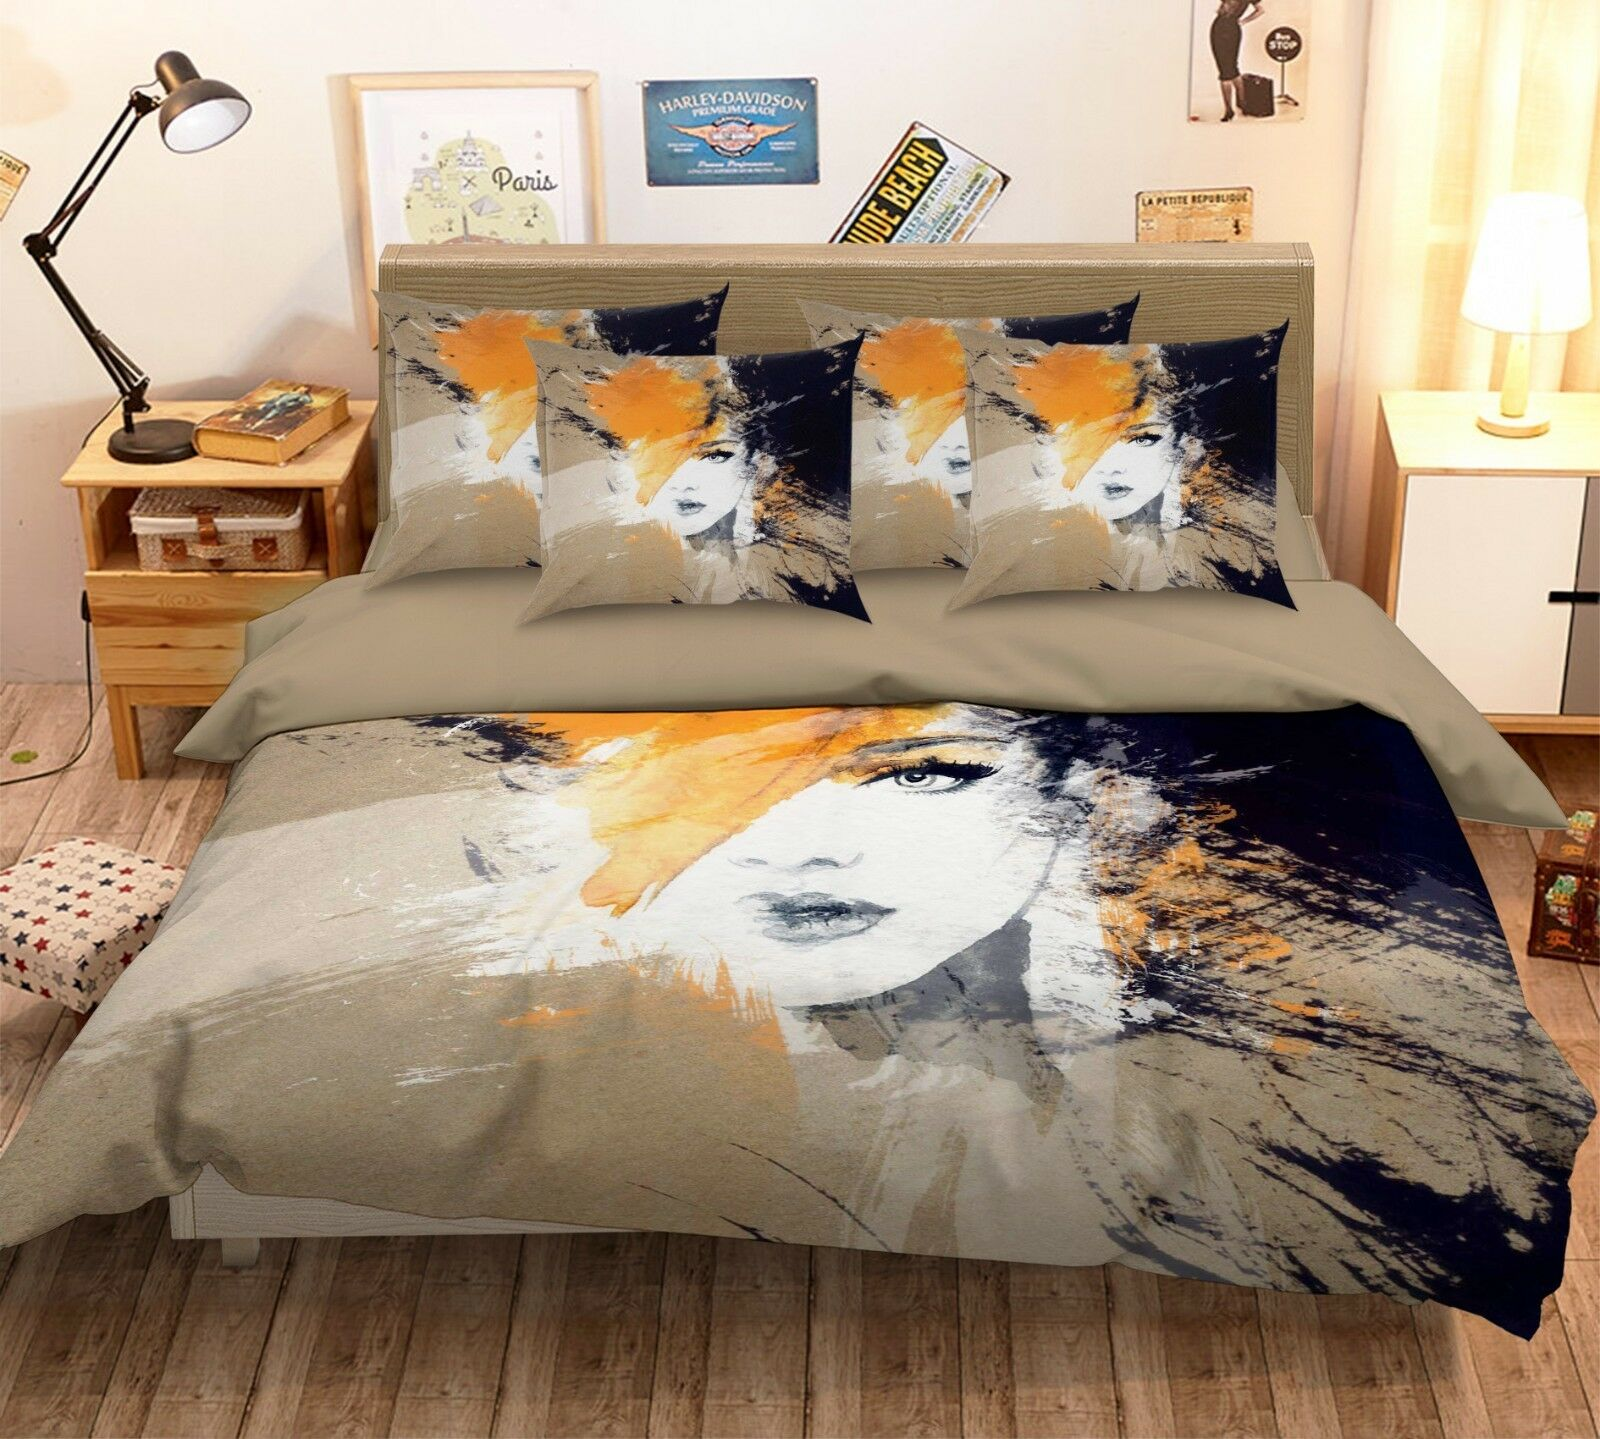 3D Girl Art 44 Bed Pillowcases Quilt Duvet Cover Set Single Queen King AU Cobb